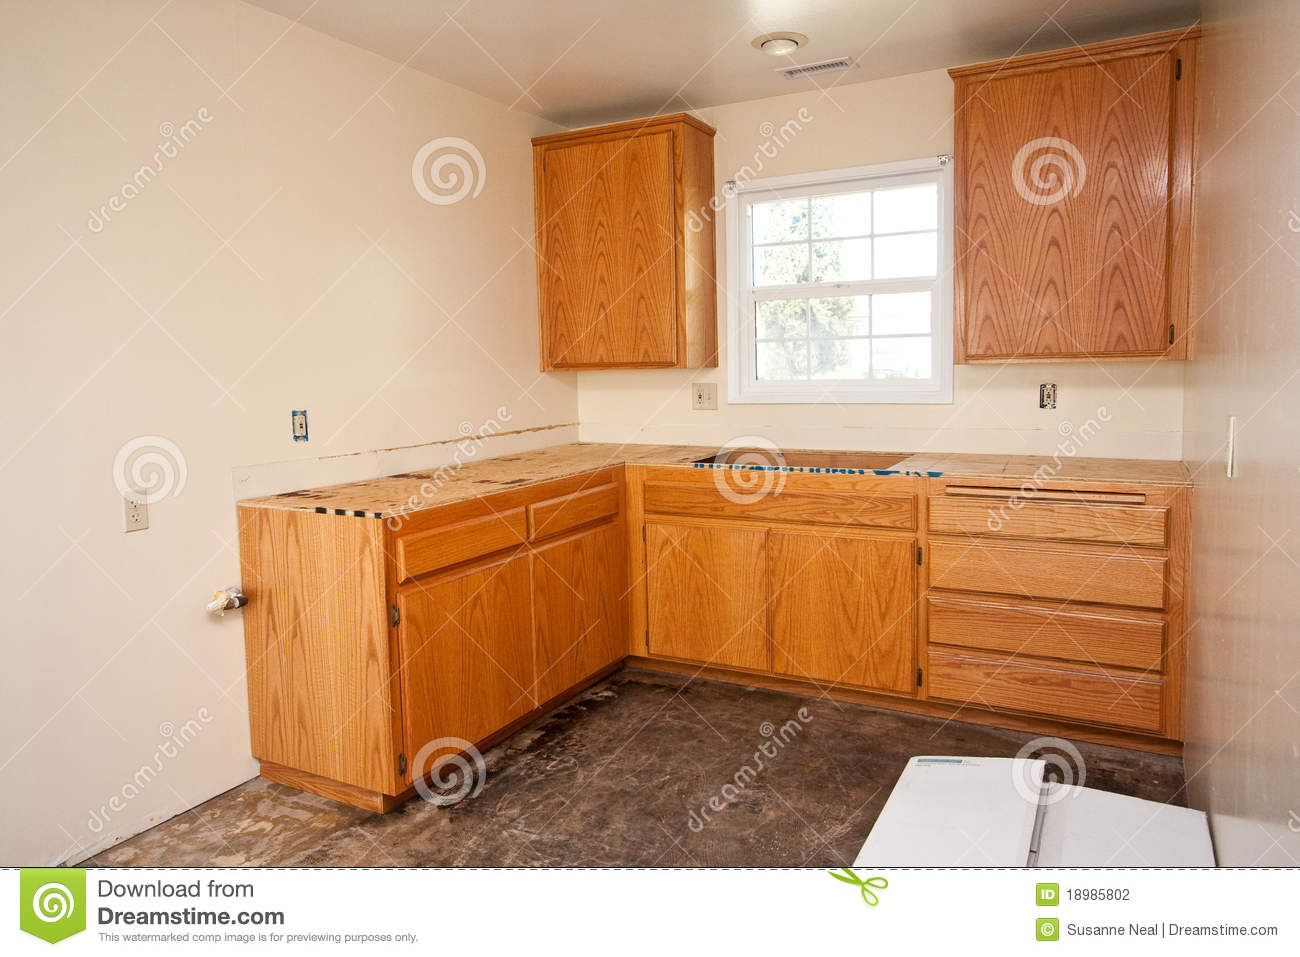 stock photography kitchen cabinets countertop image stock kitchen cabinets Kitchen cabinets without countertop